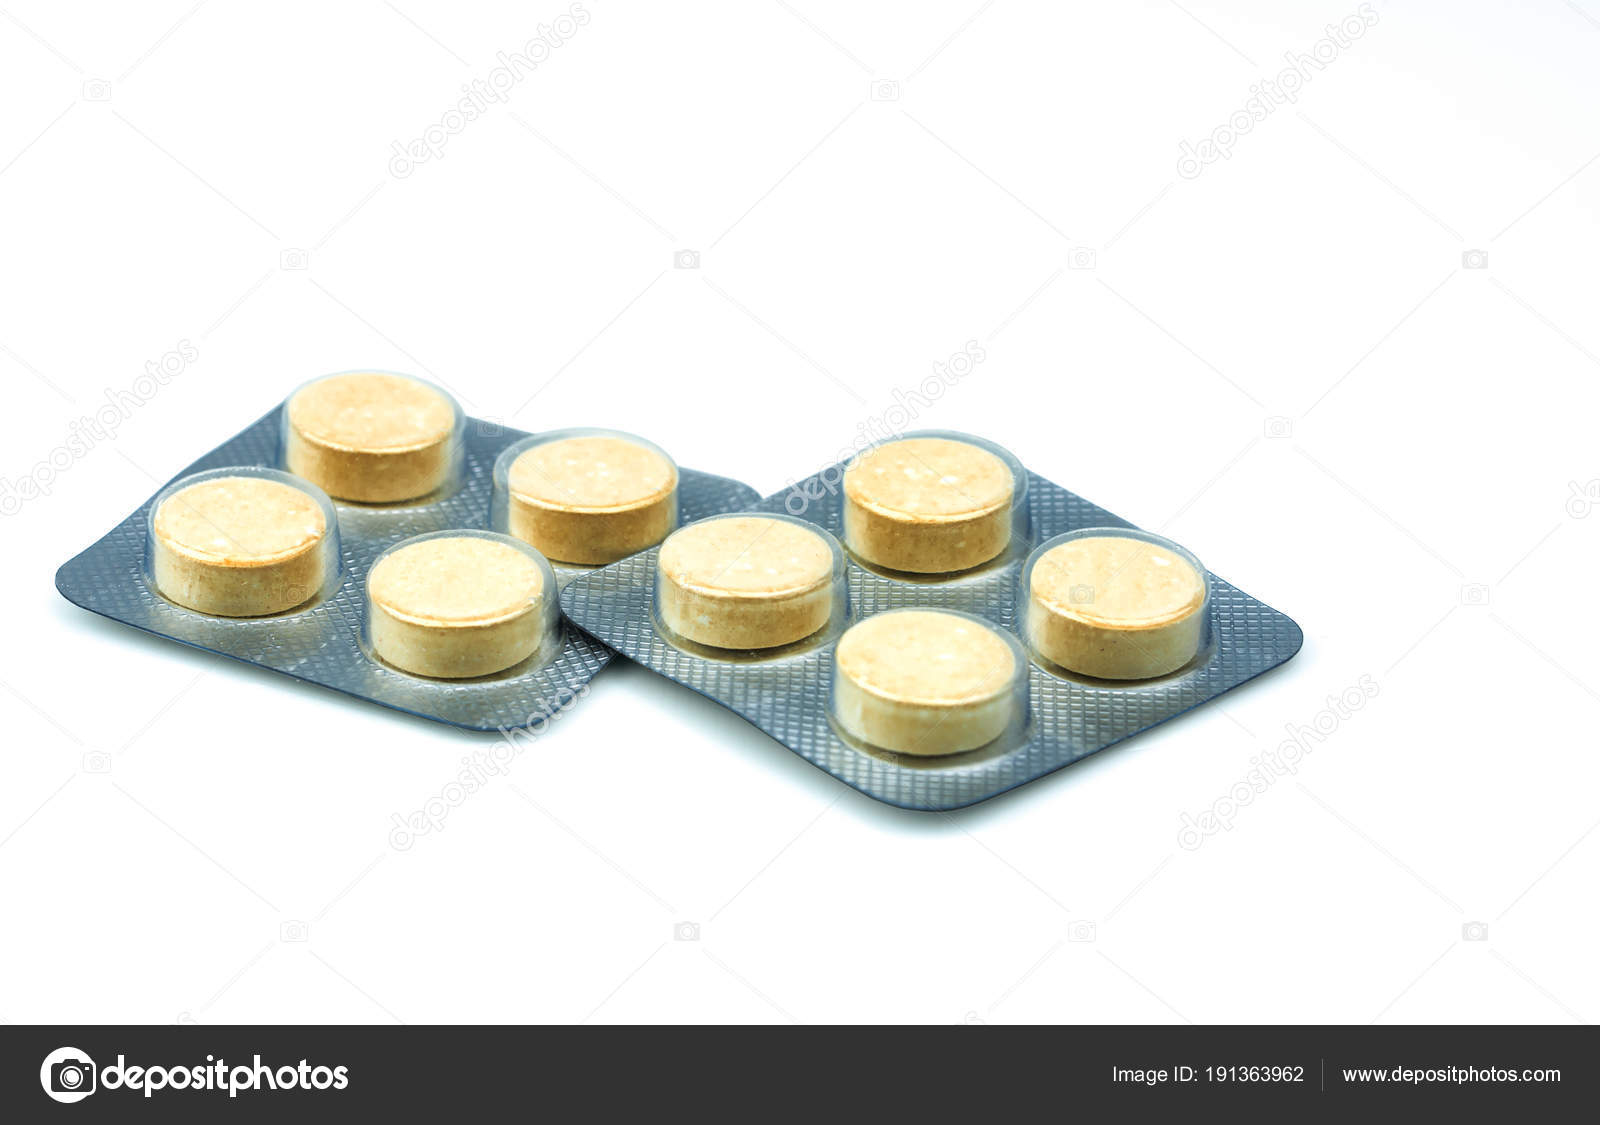 Anthelmintic tablets, Central Research Institute